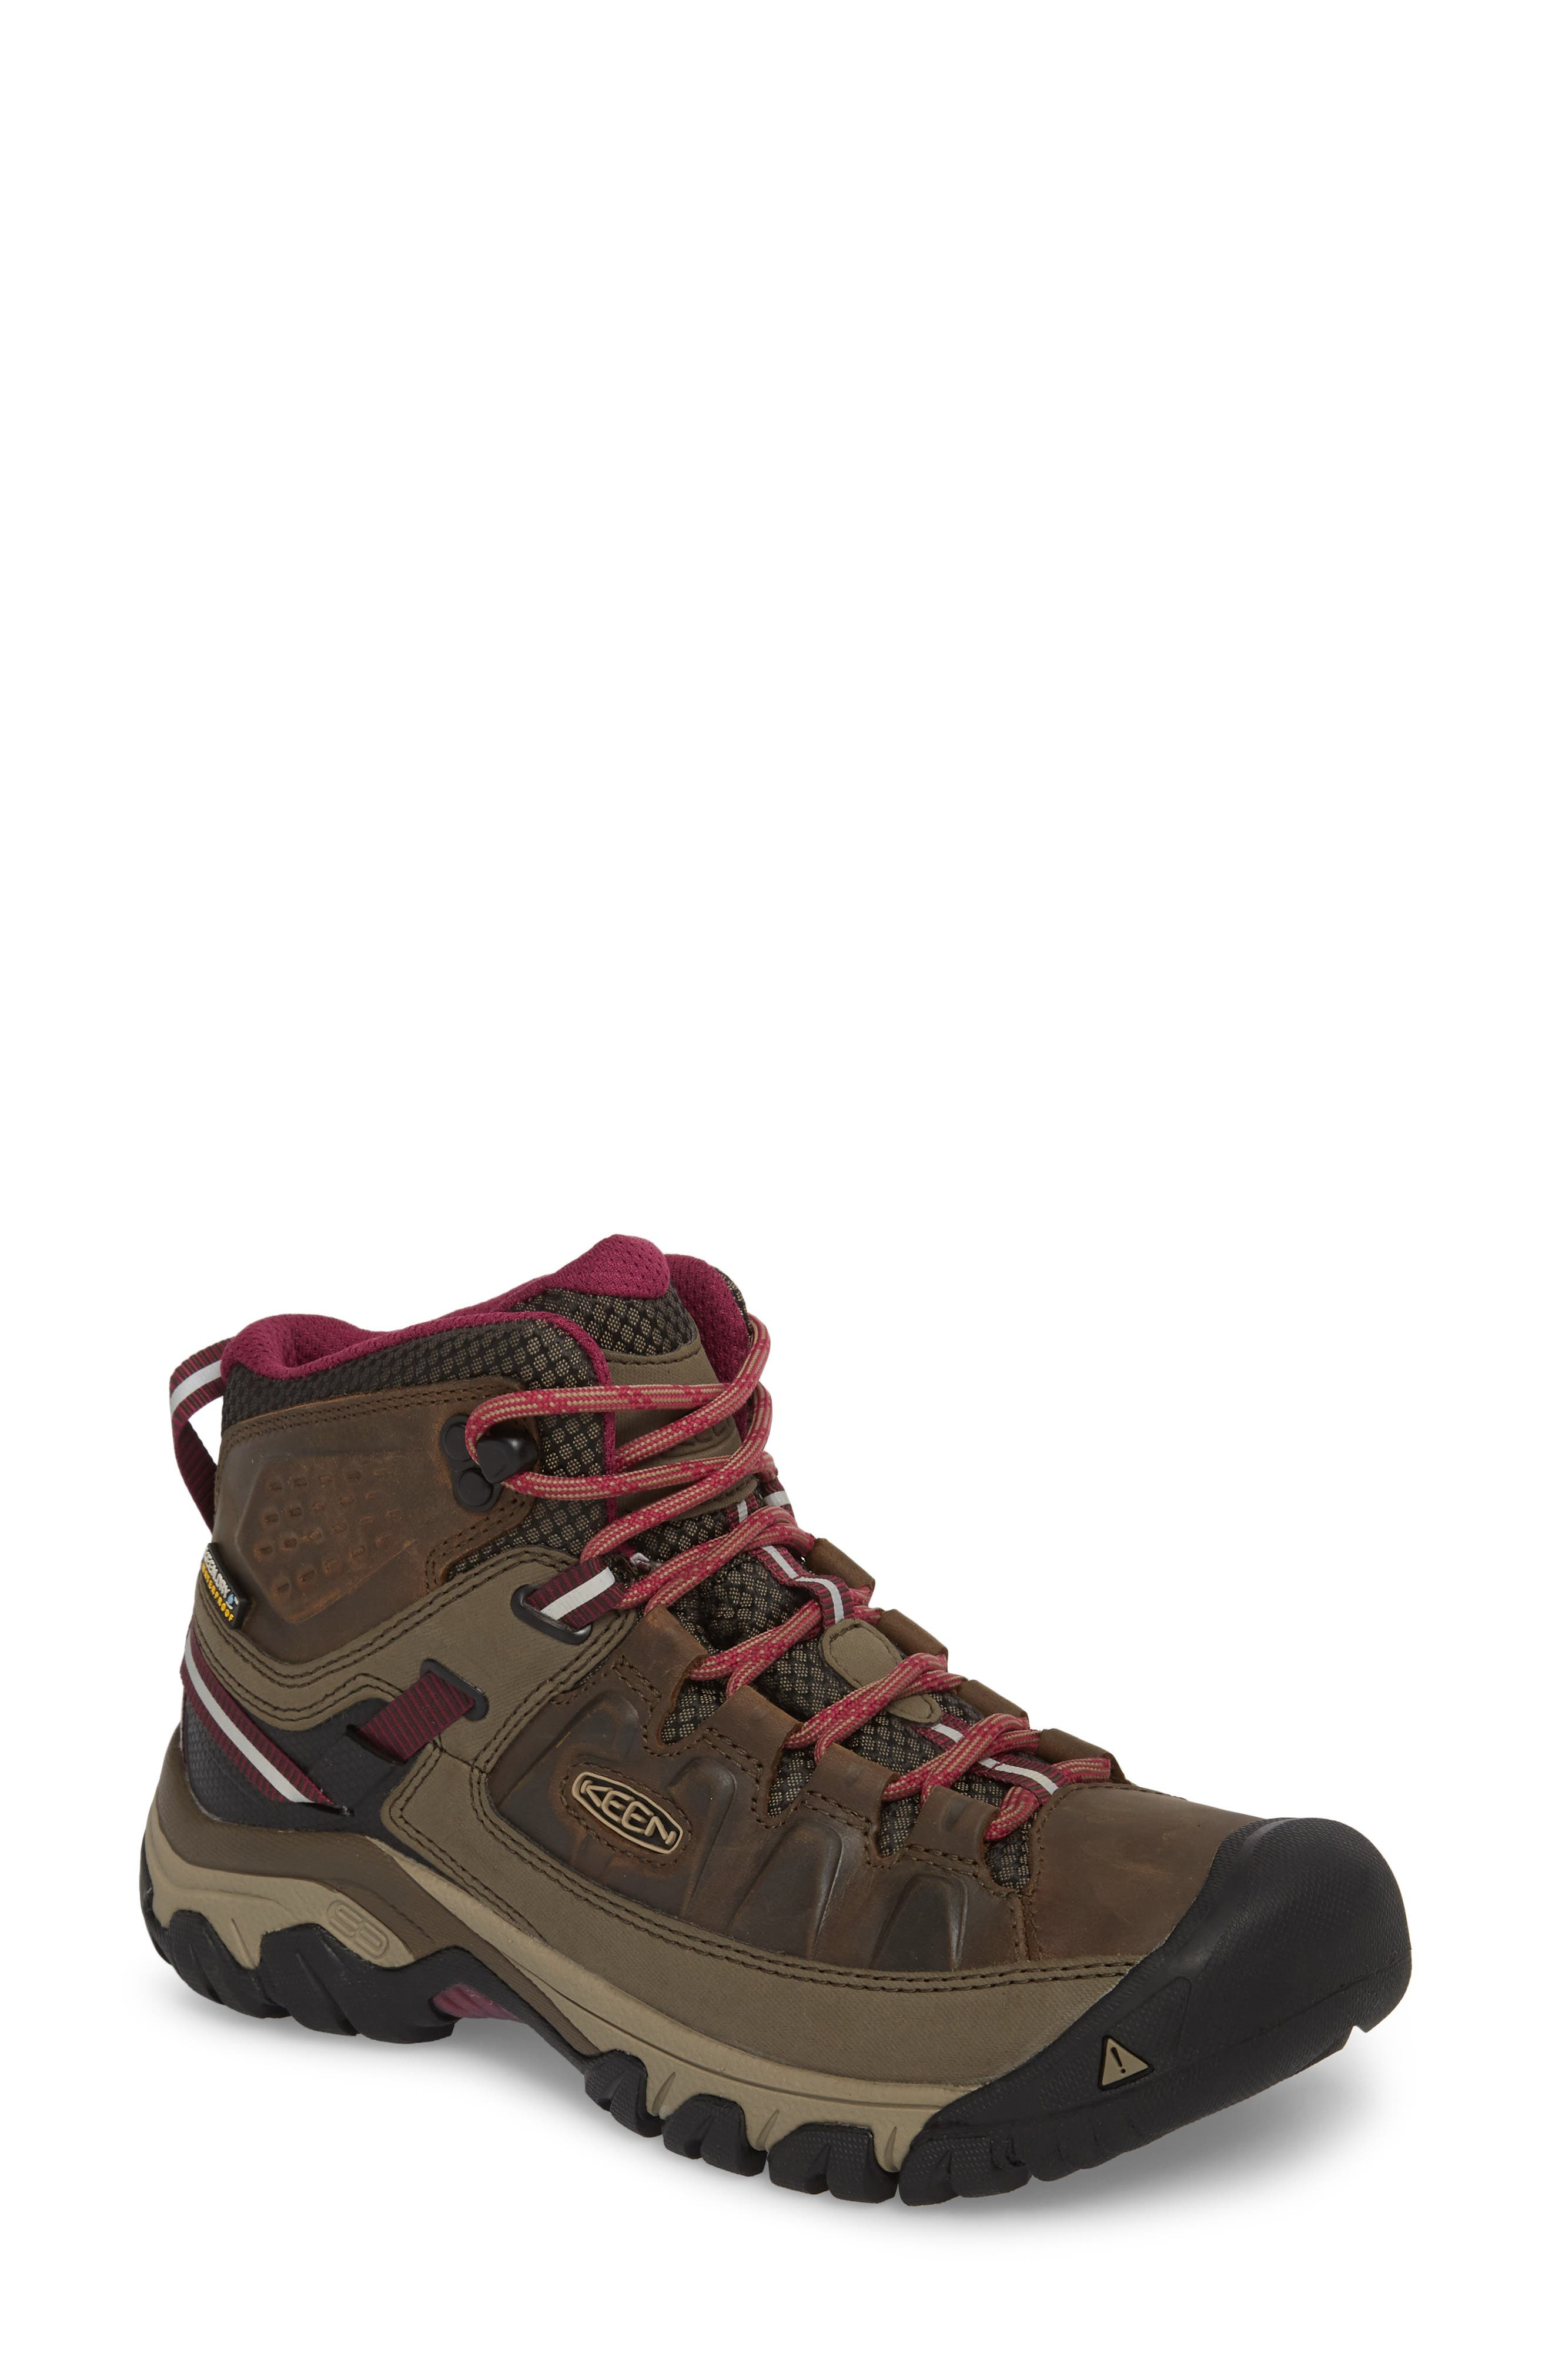 A durable lace-up hiking boot offers excellent traction and features a waterproof KEEN. Dry lining to keep feet free from uncomfortable moisture. Multidensity cushioning and arch support enhance comfort. Style Name: Keen Targhee Iii Mid Waterproof Hiking Boot (Women). Style Number: 5544386 1. Available in stores.